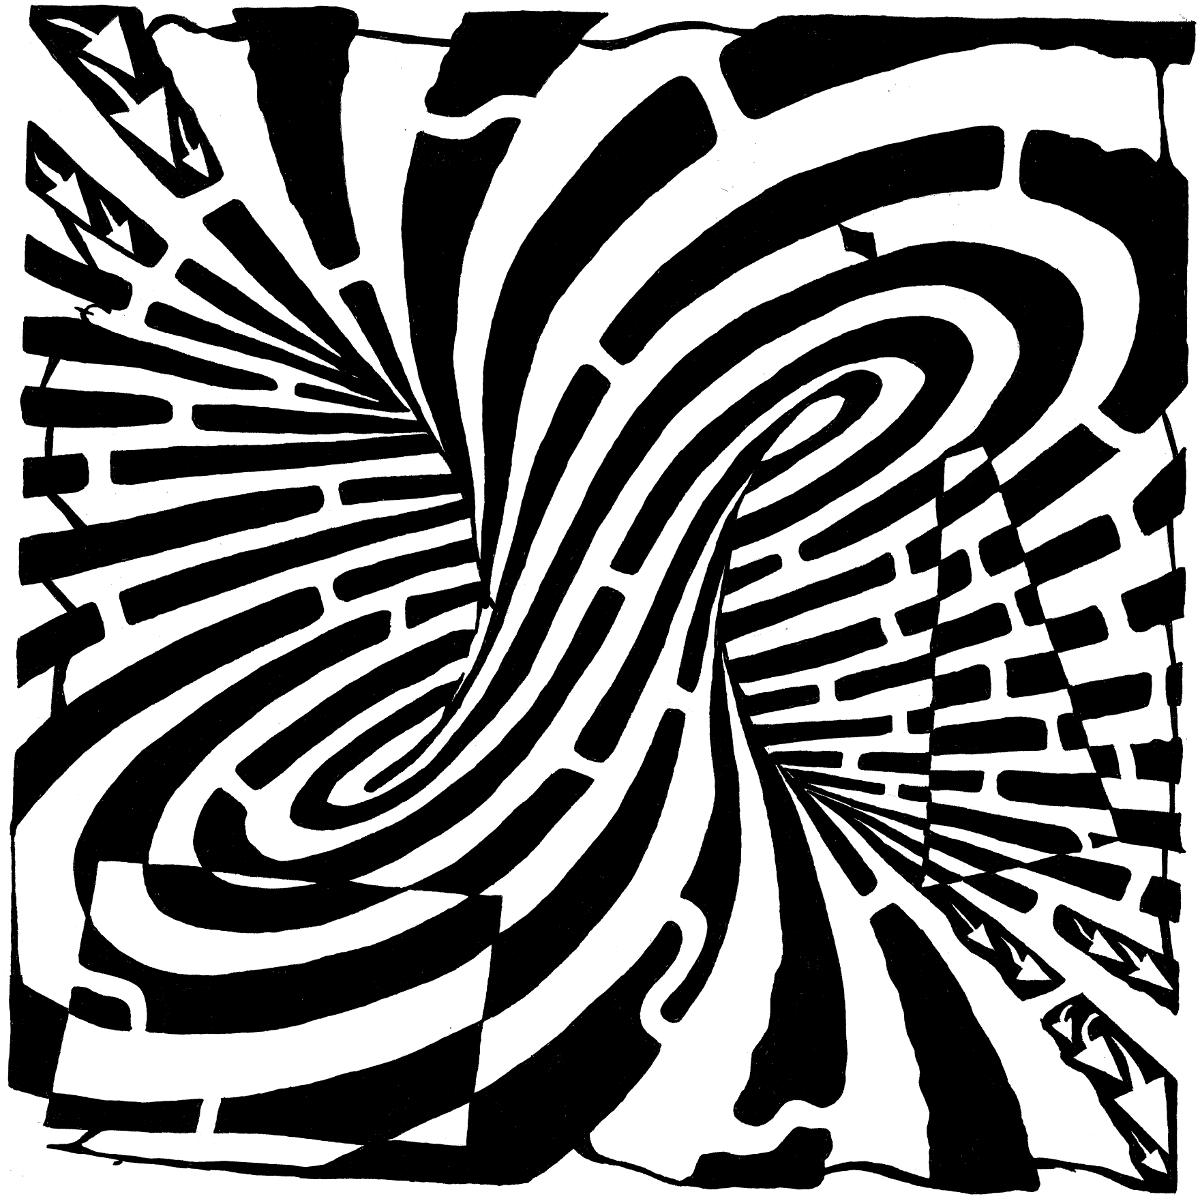 coloring pages optical illusions optical illusion 15 coloring page free printable optical pages illusions coloring